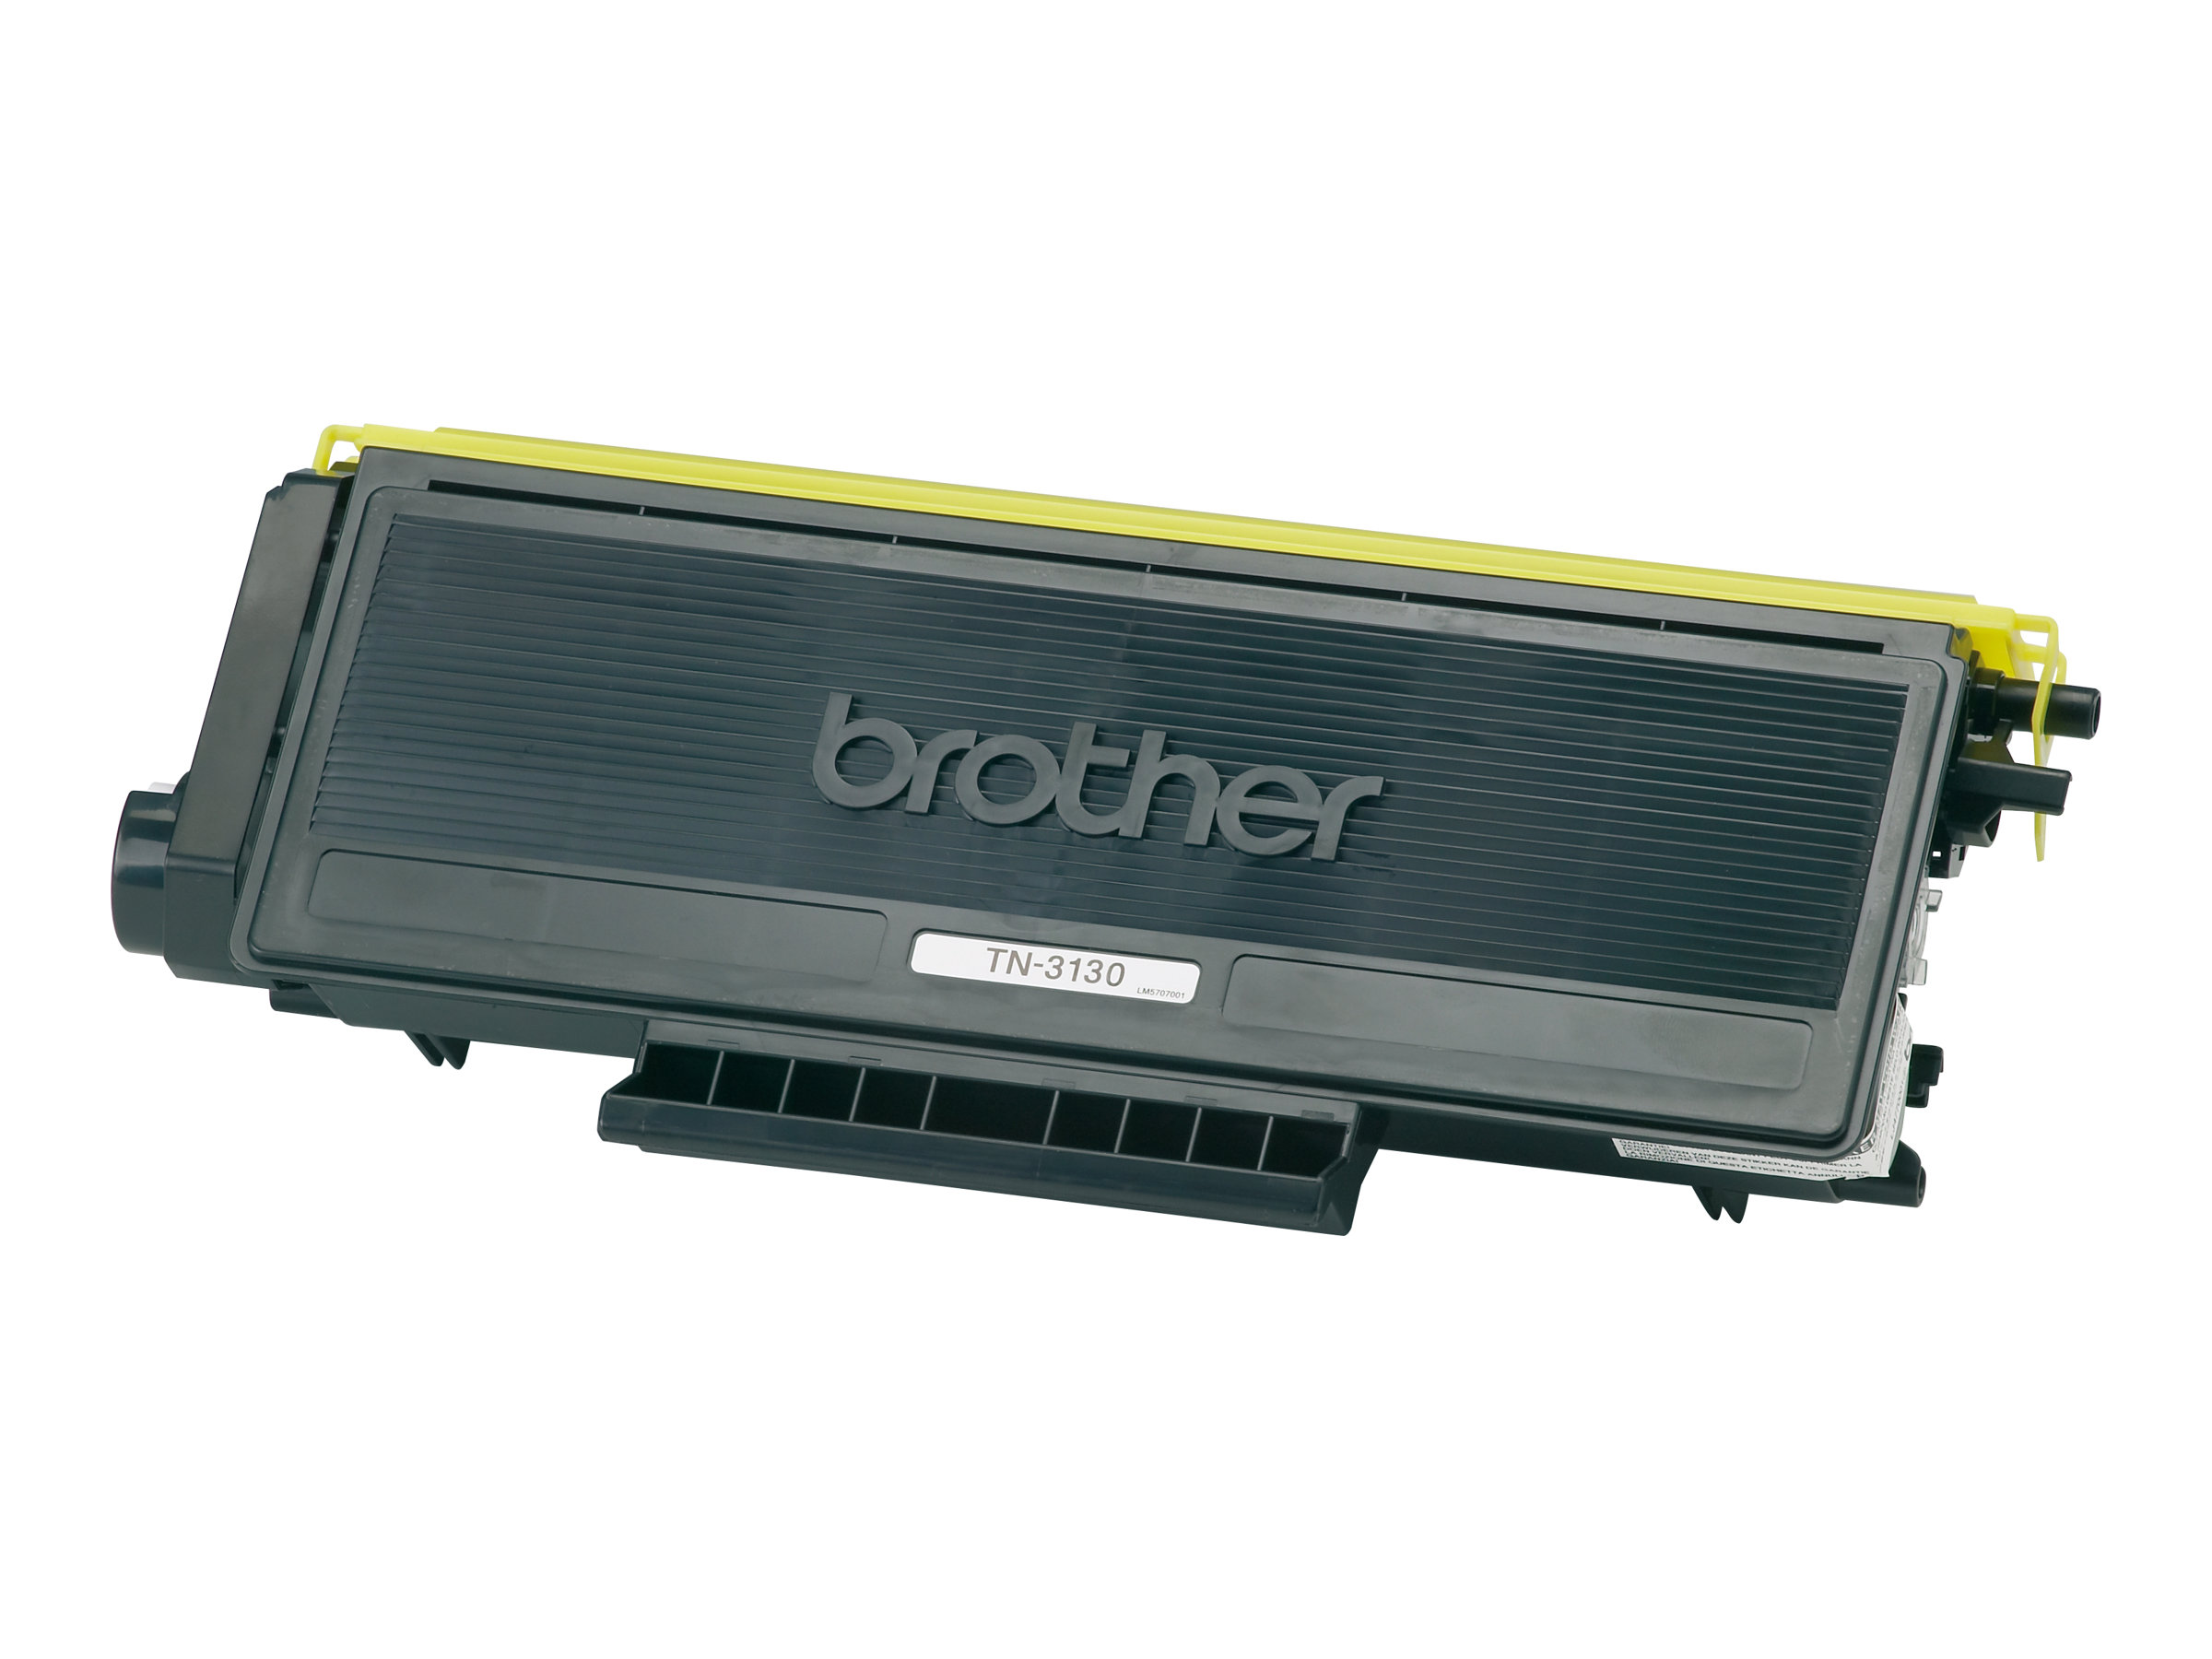 Brother TN3130 - Schwarz - Original - Tonerpatrone - für Brother DCP-8060, 8065, HL-5240, 5250, 5270, 5280, MFC-8460, 8860, 8870